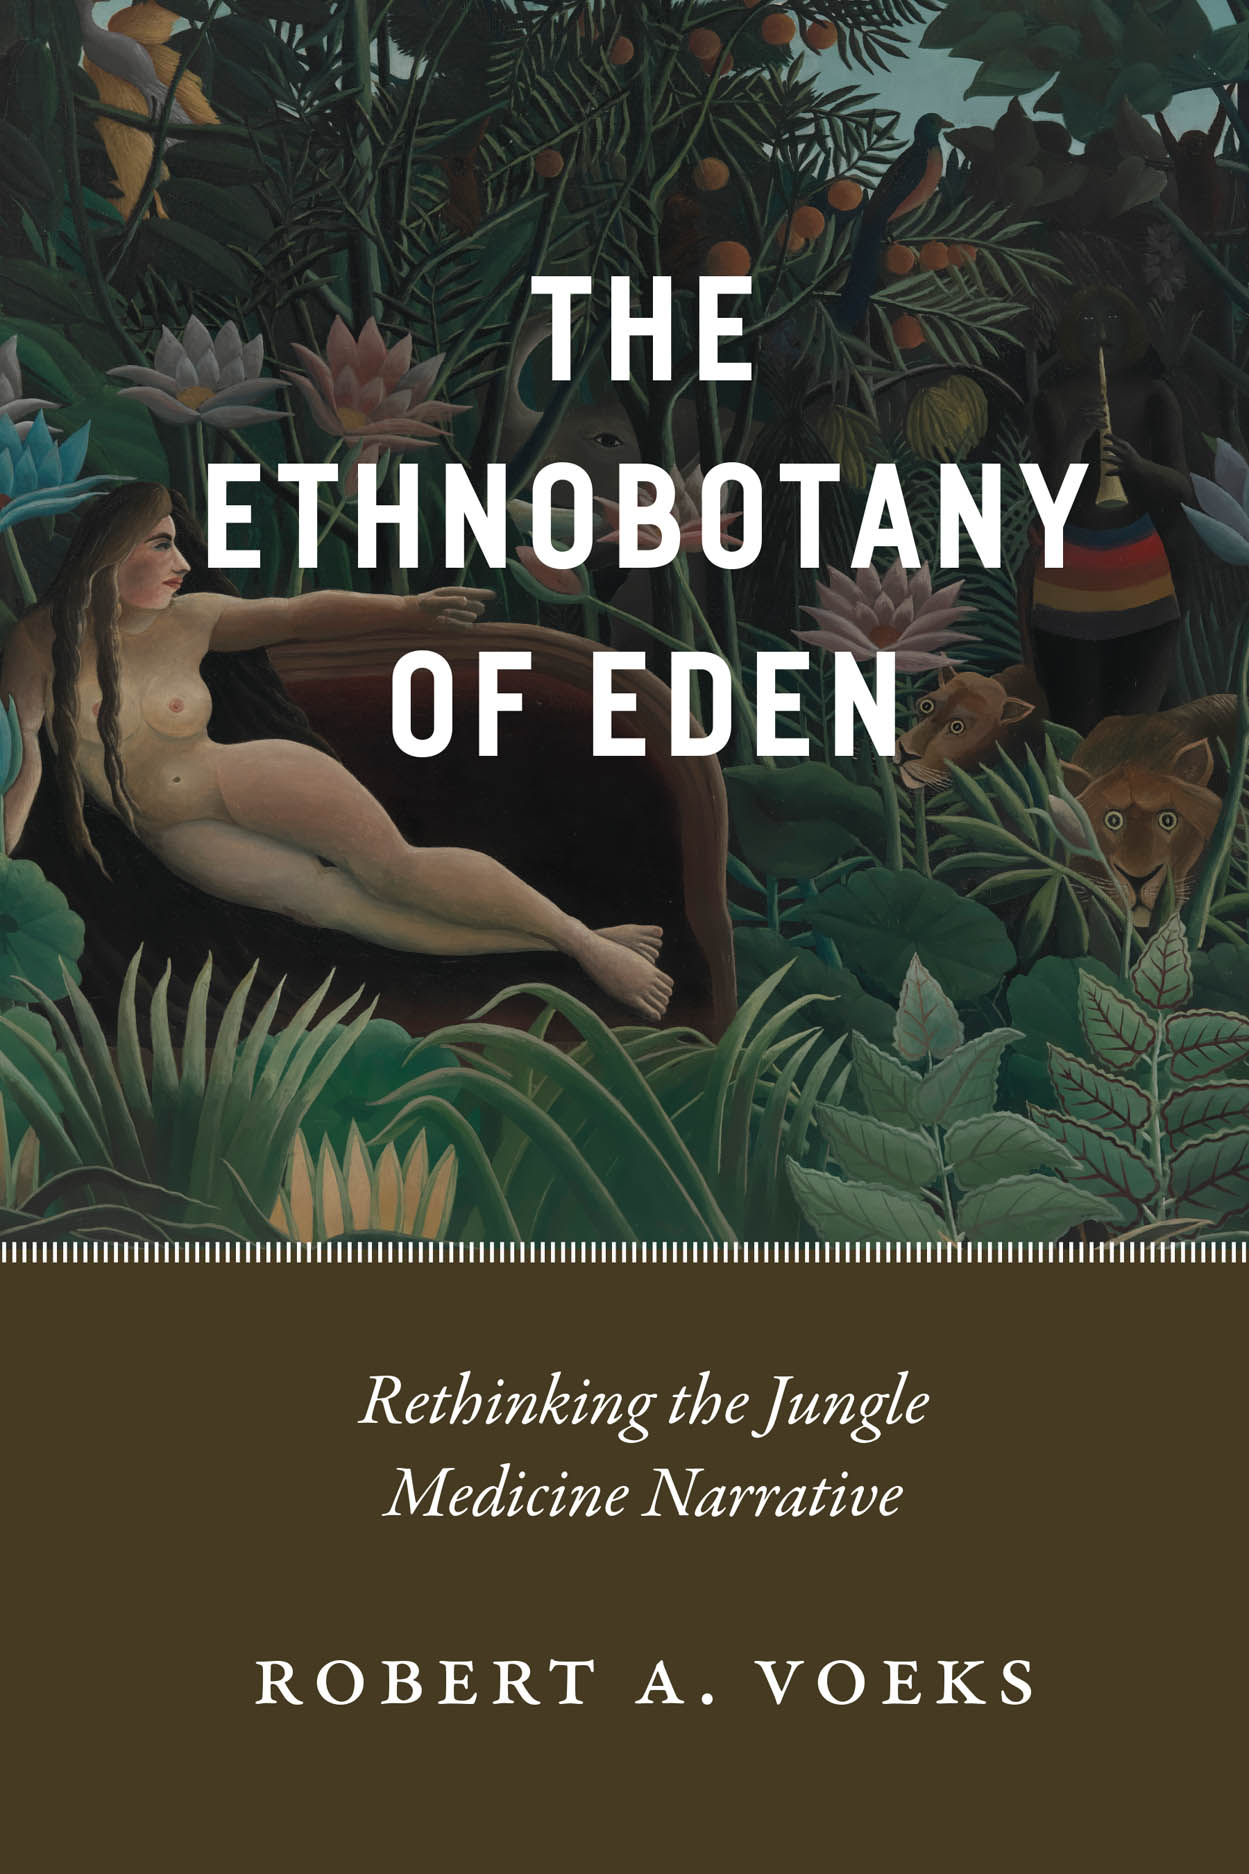 The Ethnobotany of Eden: Rethinking the Jungle Medicine Narrative